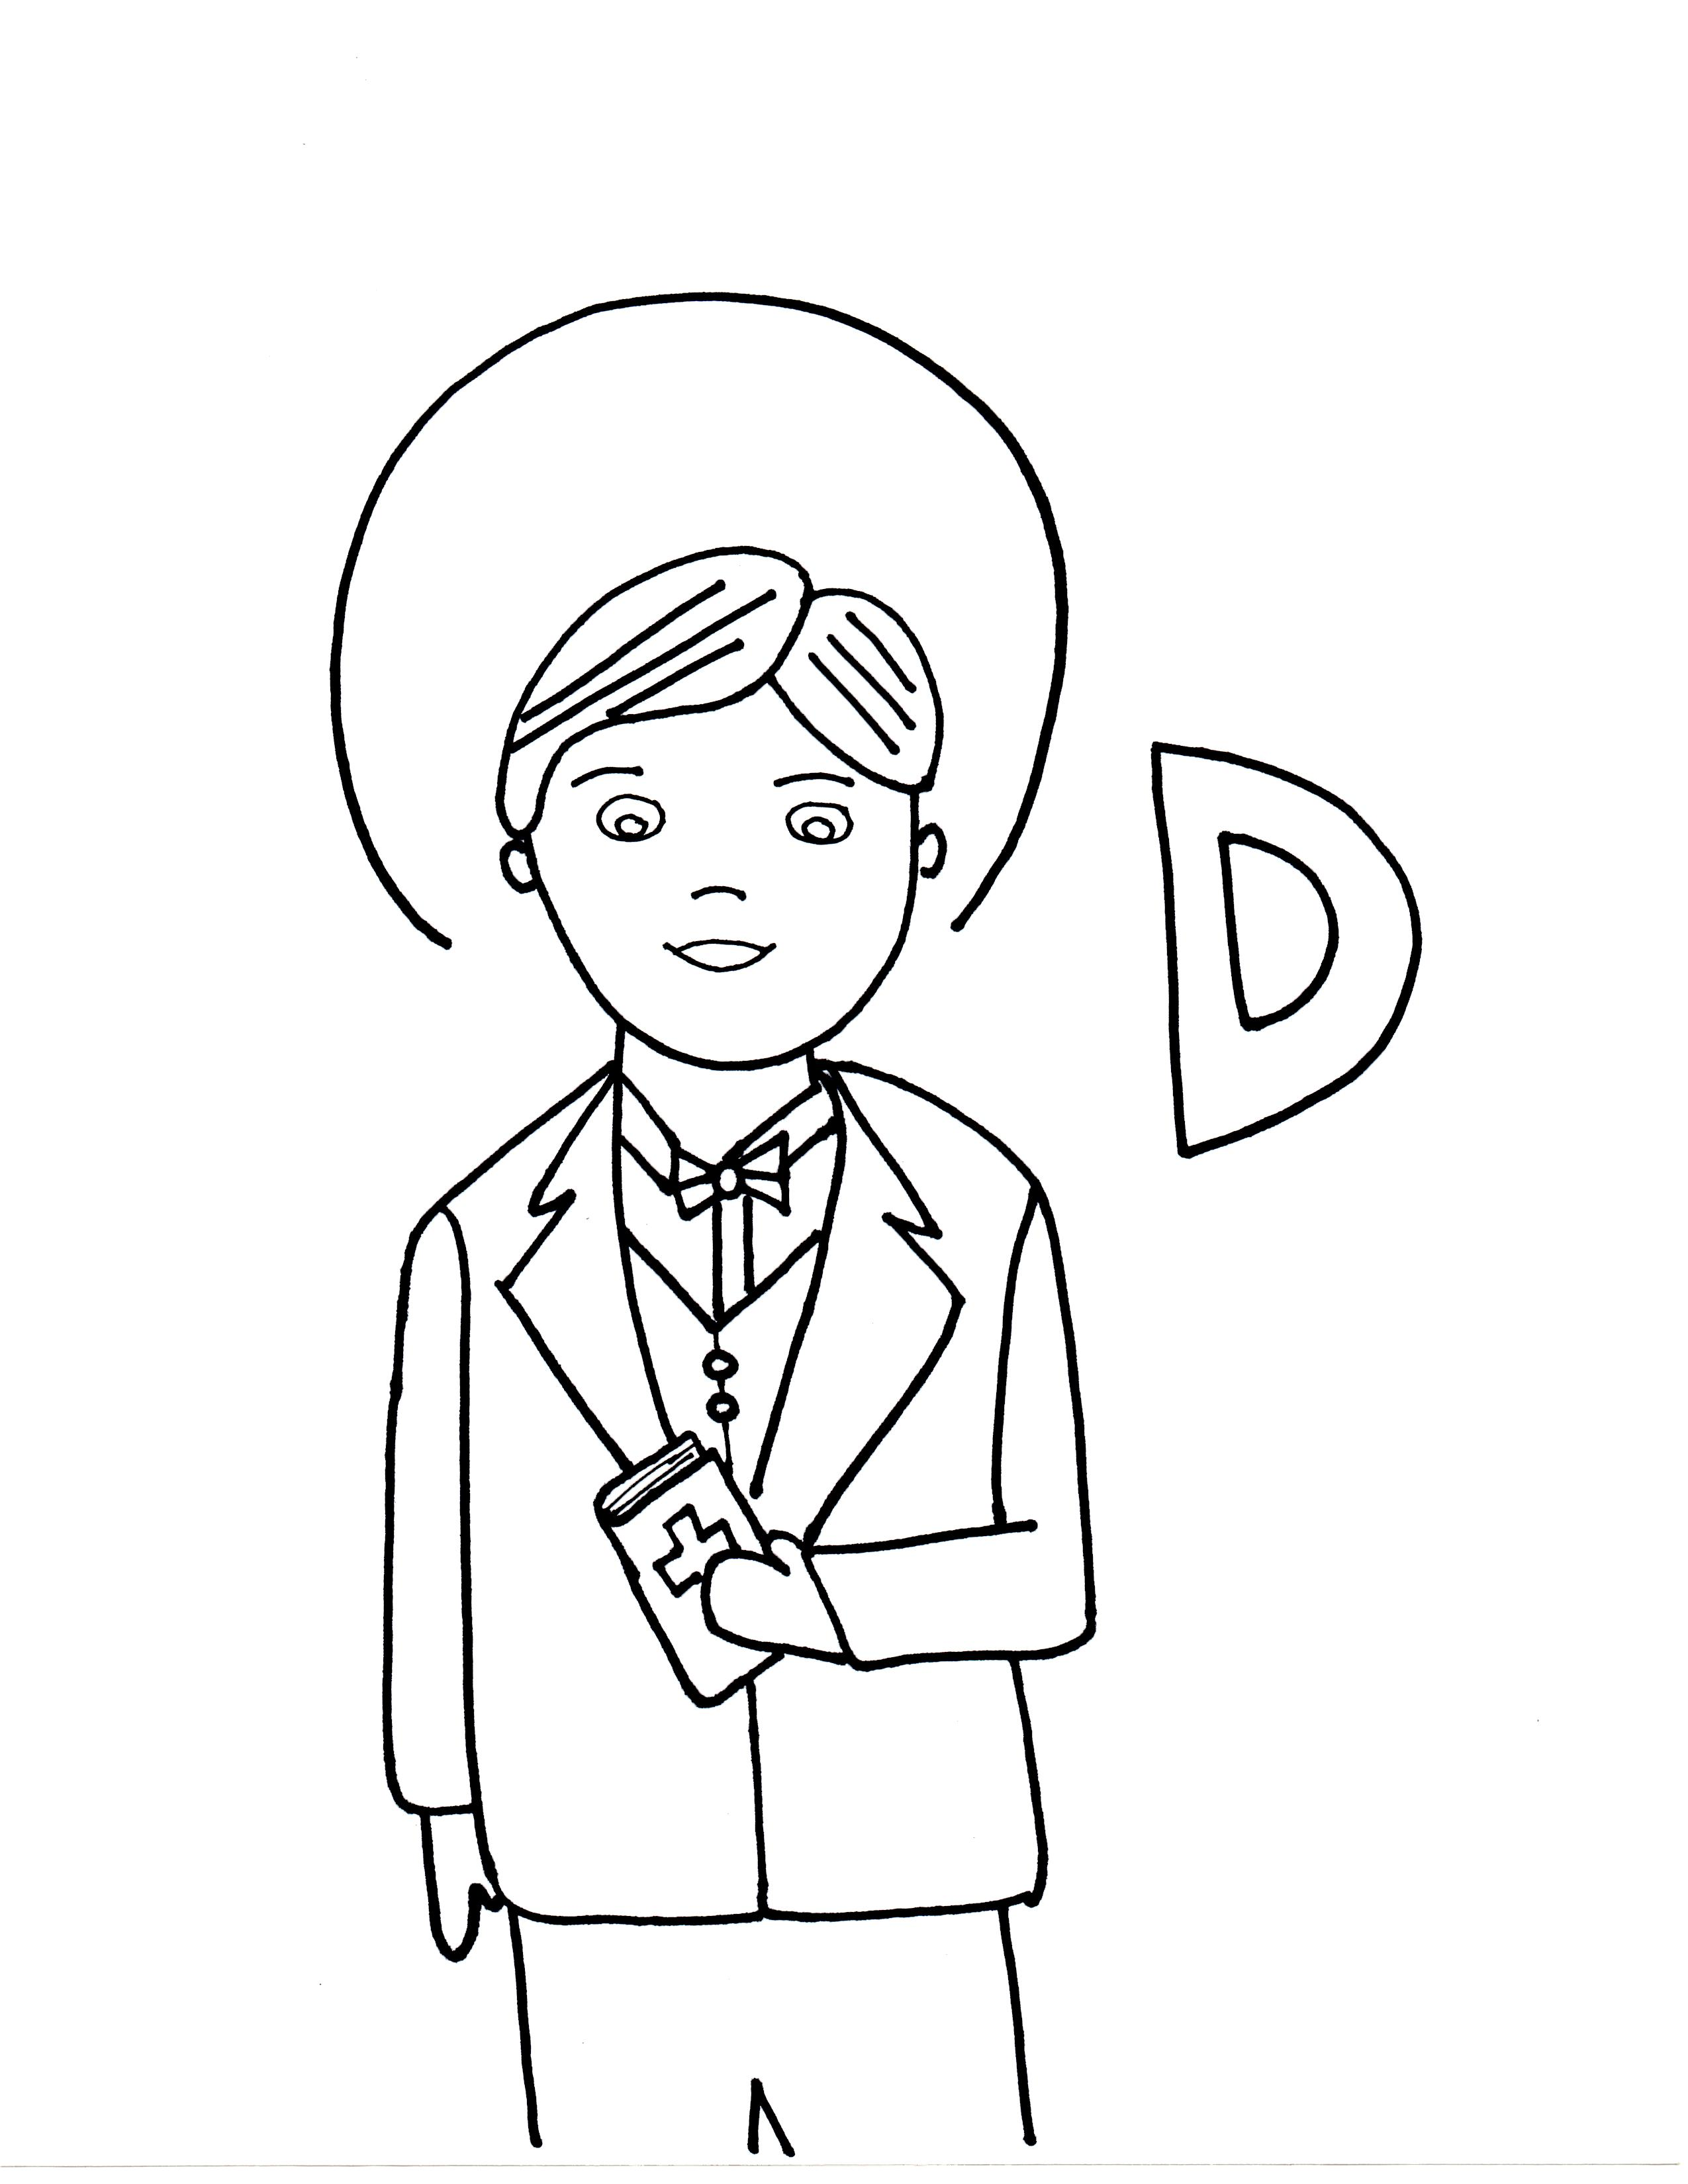 D Is For St Dominic Savio